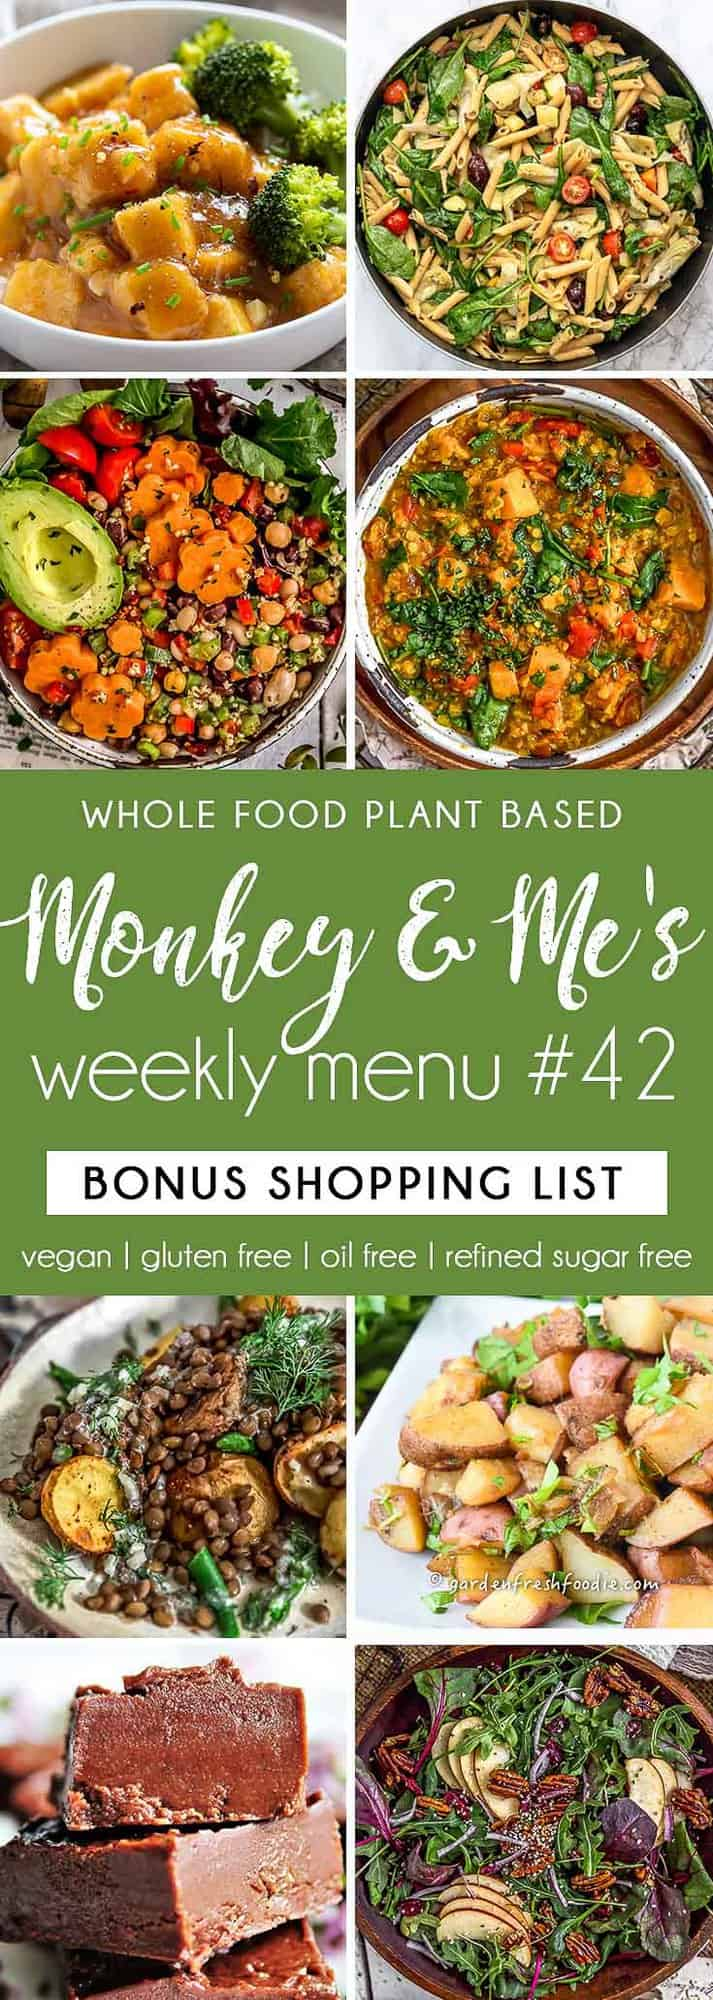 Monkey and Me's Menu 42 featuring 8 recipes